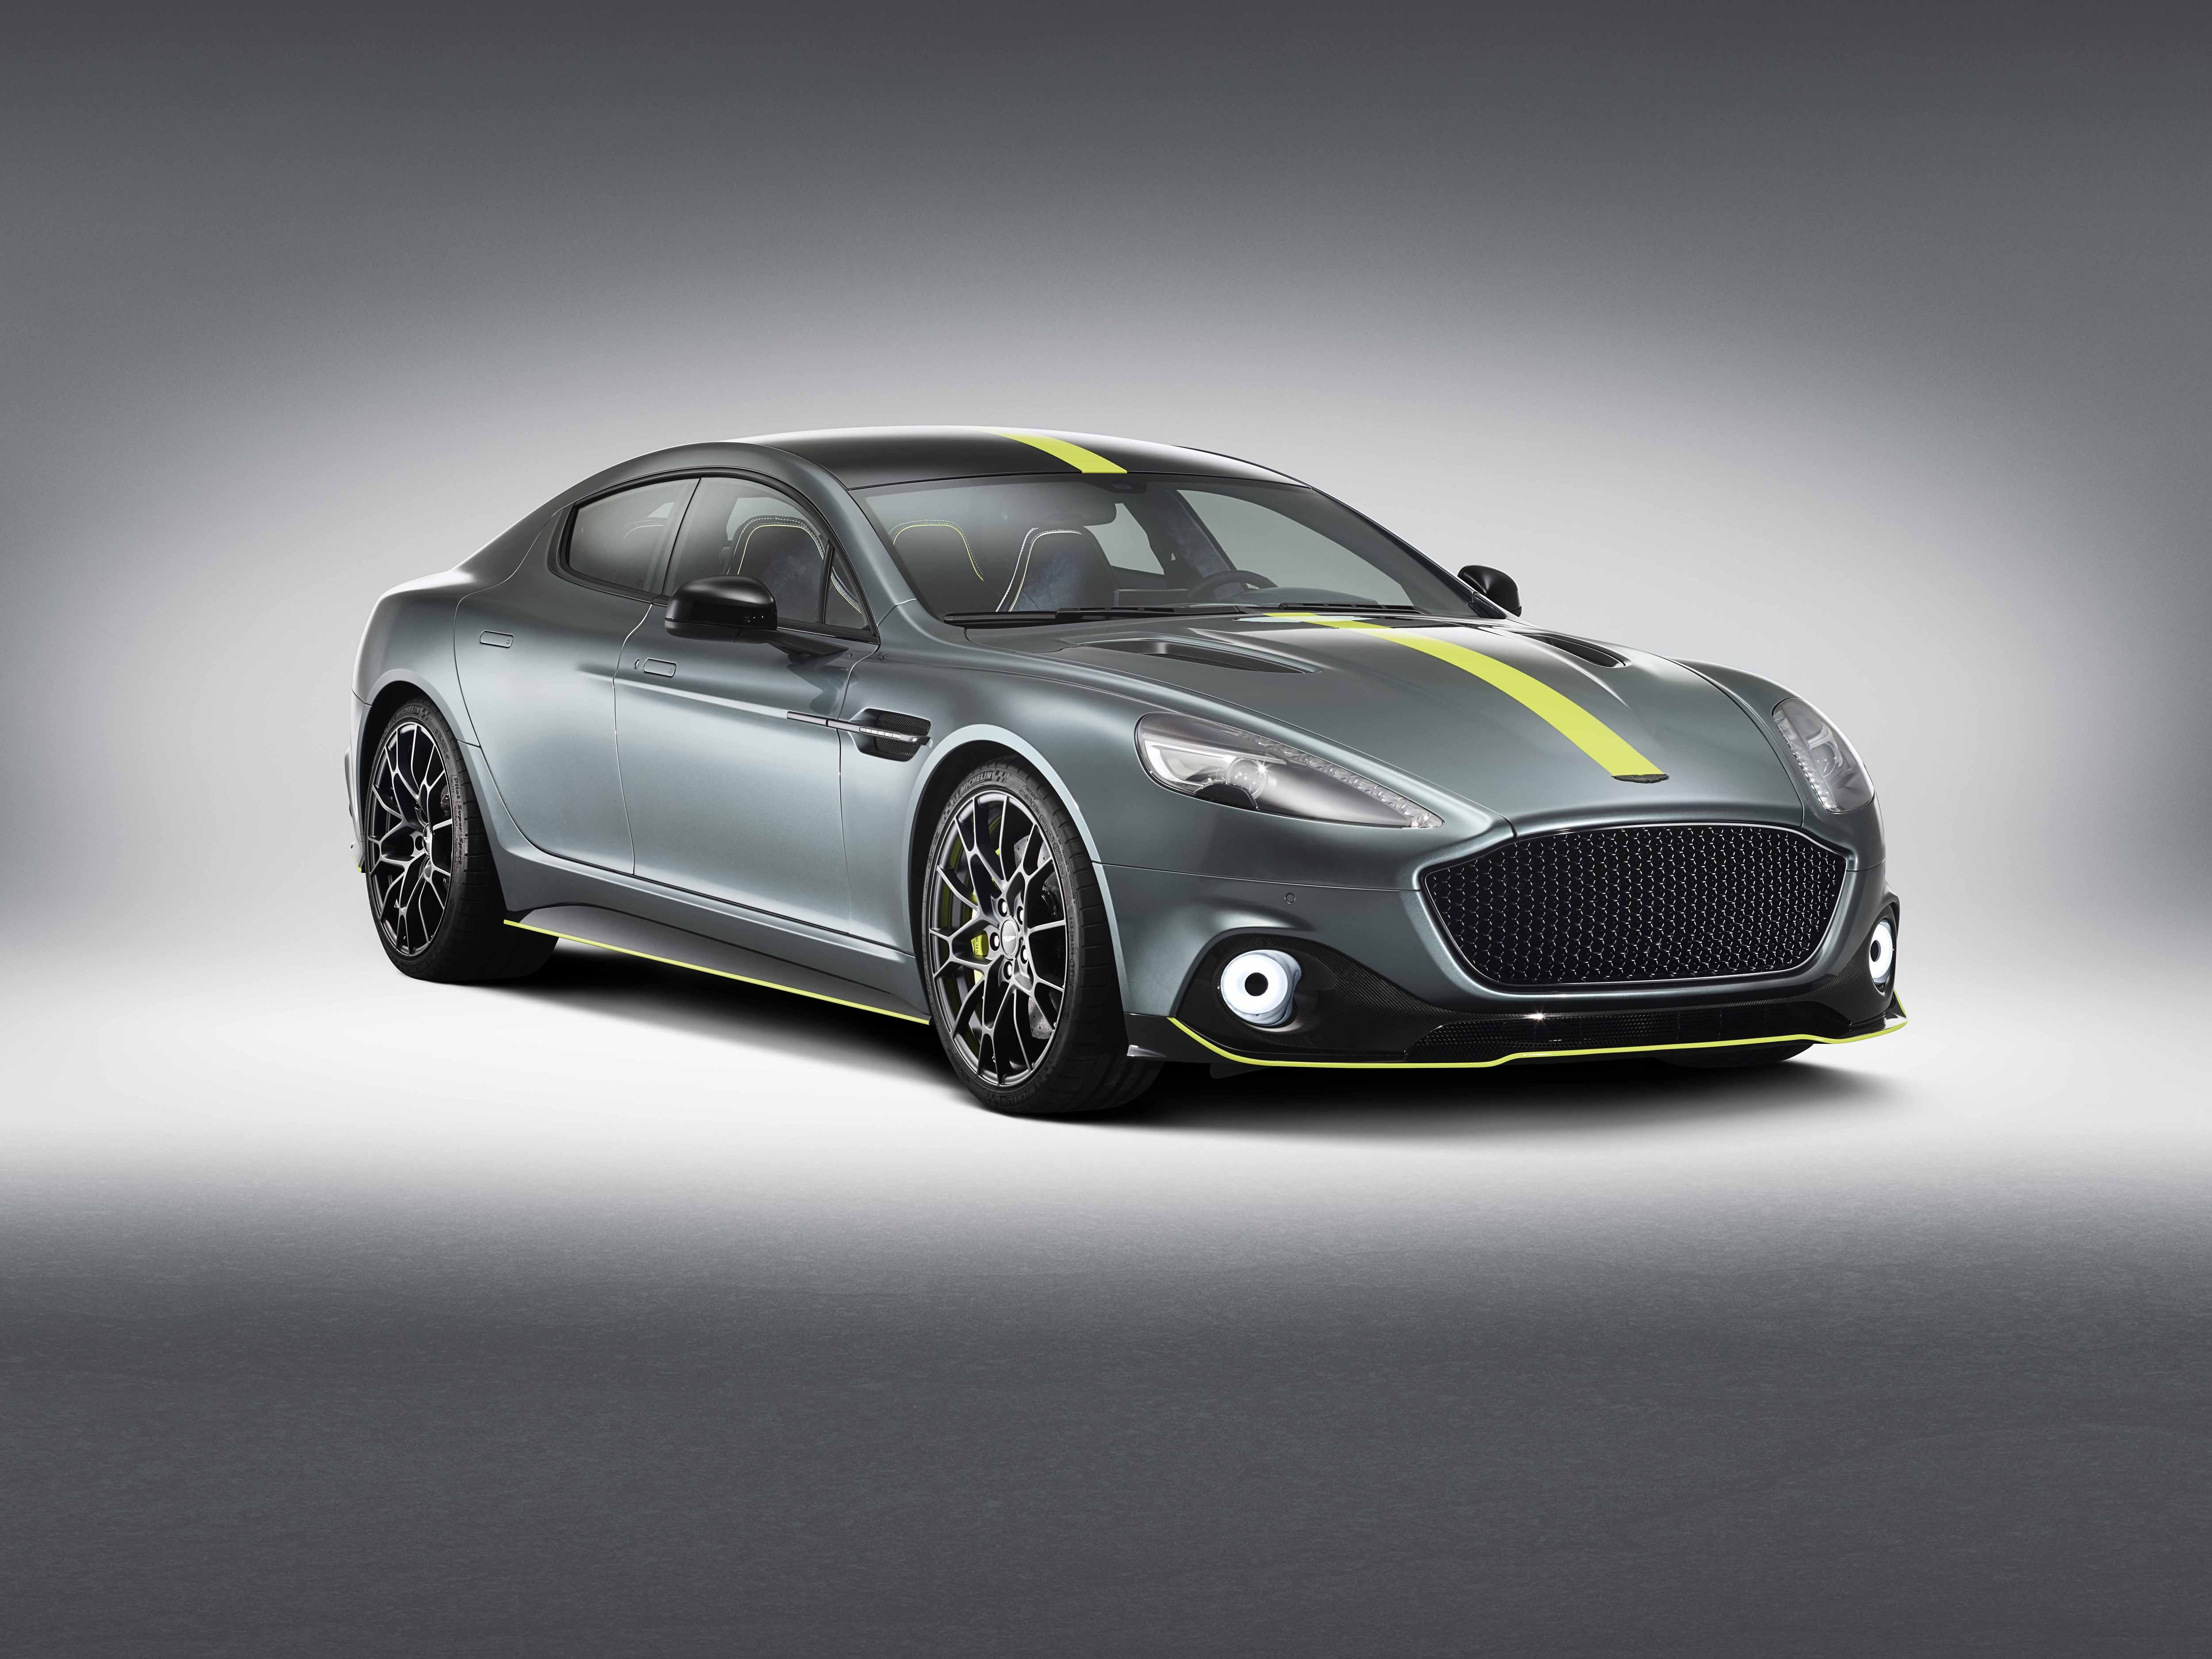 Aston Martin Rapide AMR - Goodwood Festival of Speed